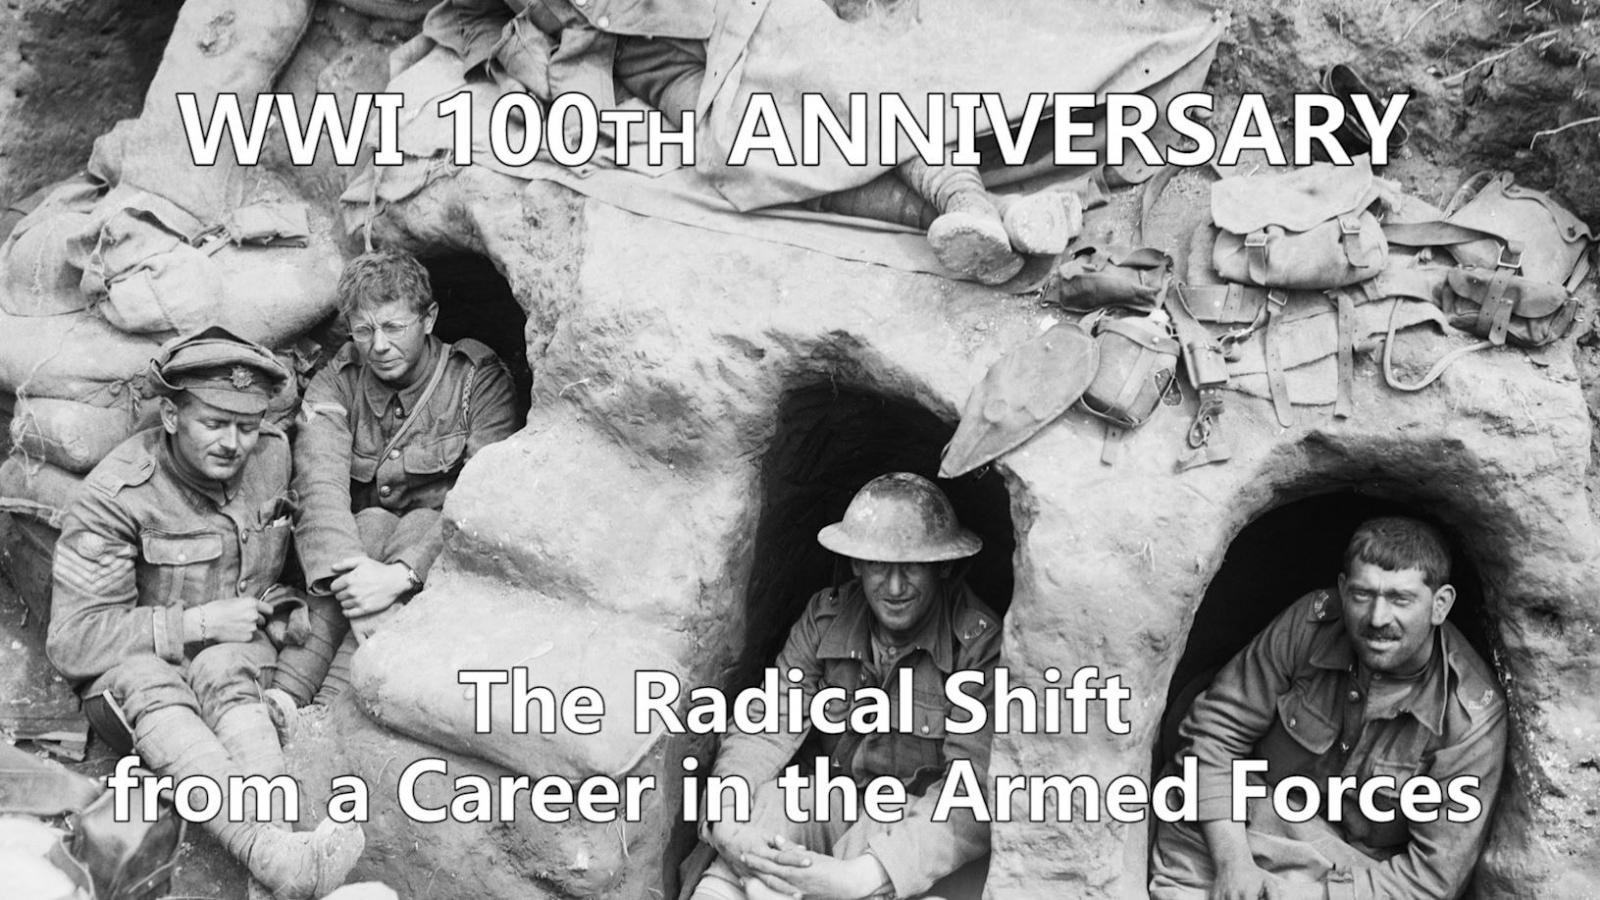 WWI 100th on Film: The Radical Shift from a Career in the Armed Forces